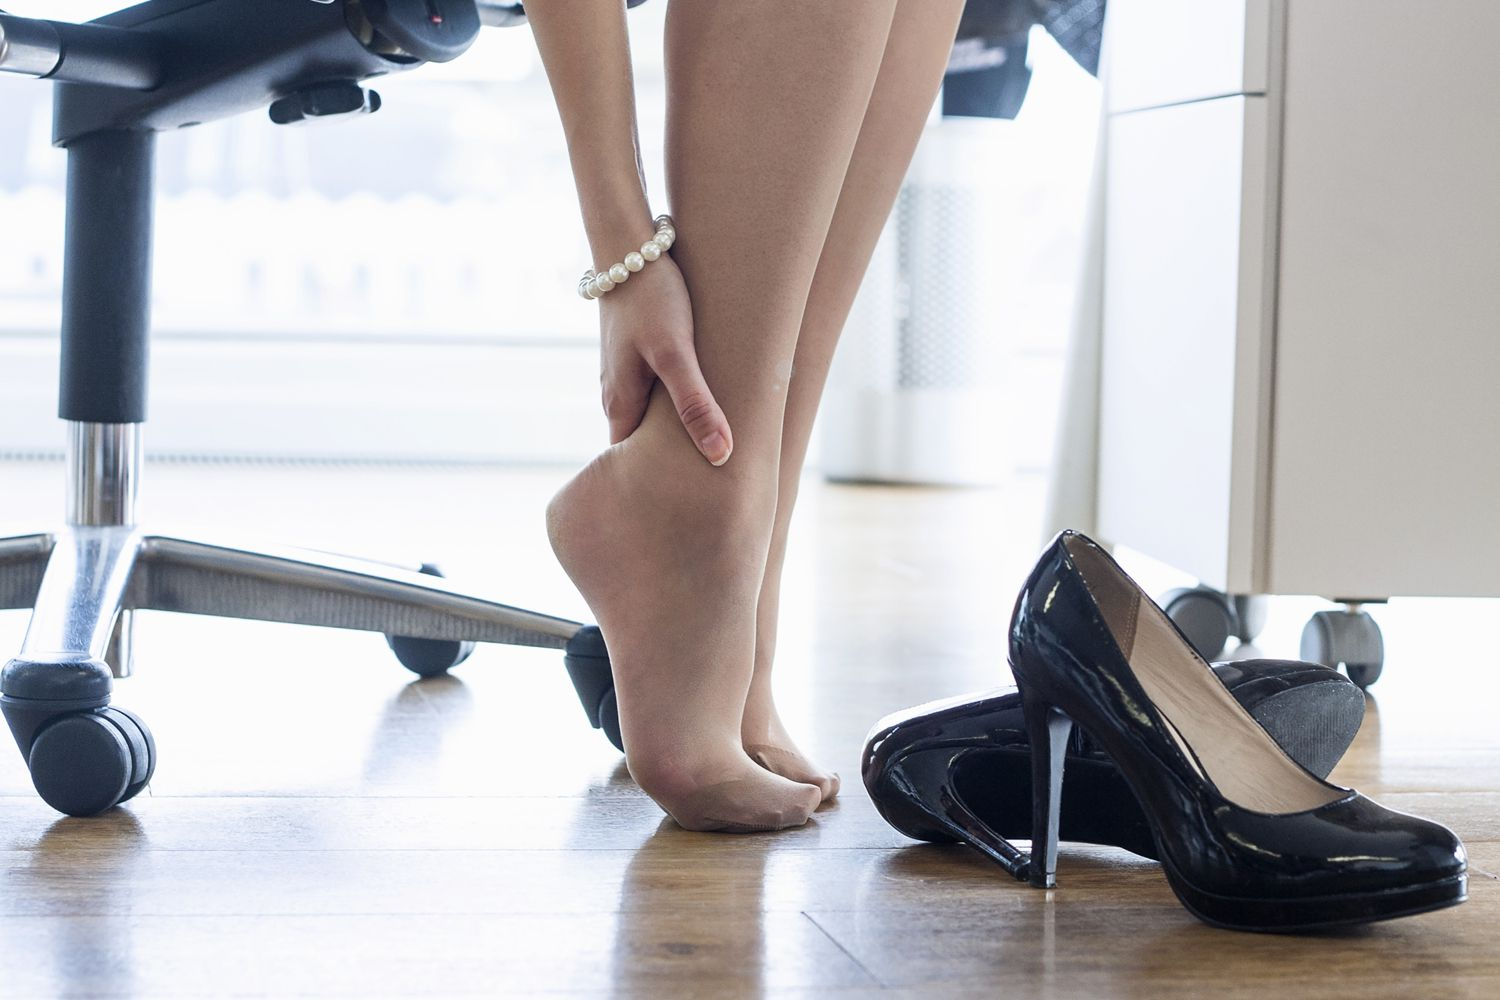 A woman with her heels off rubbing the back of her ankle